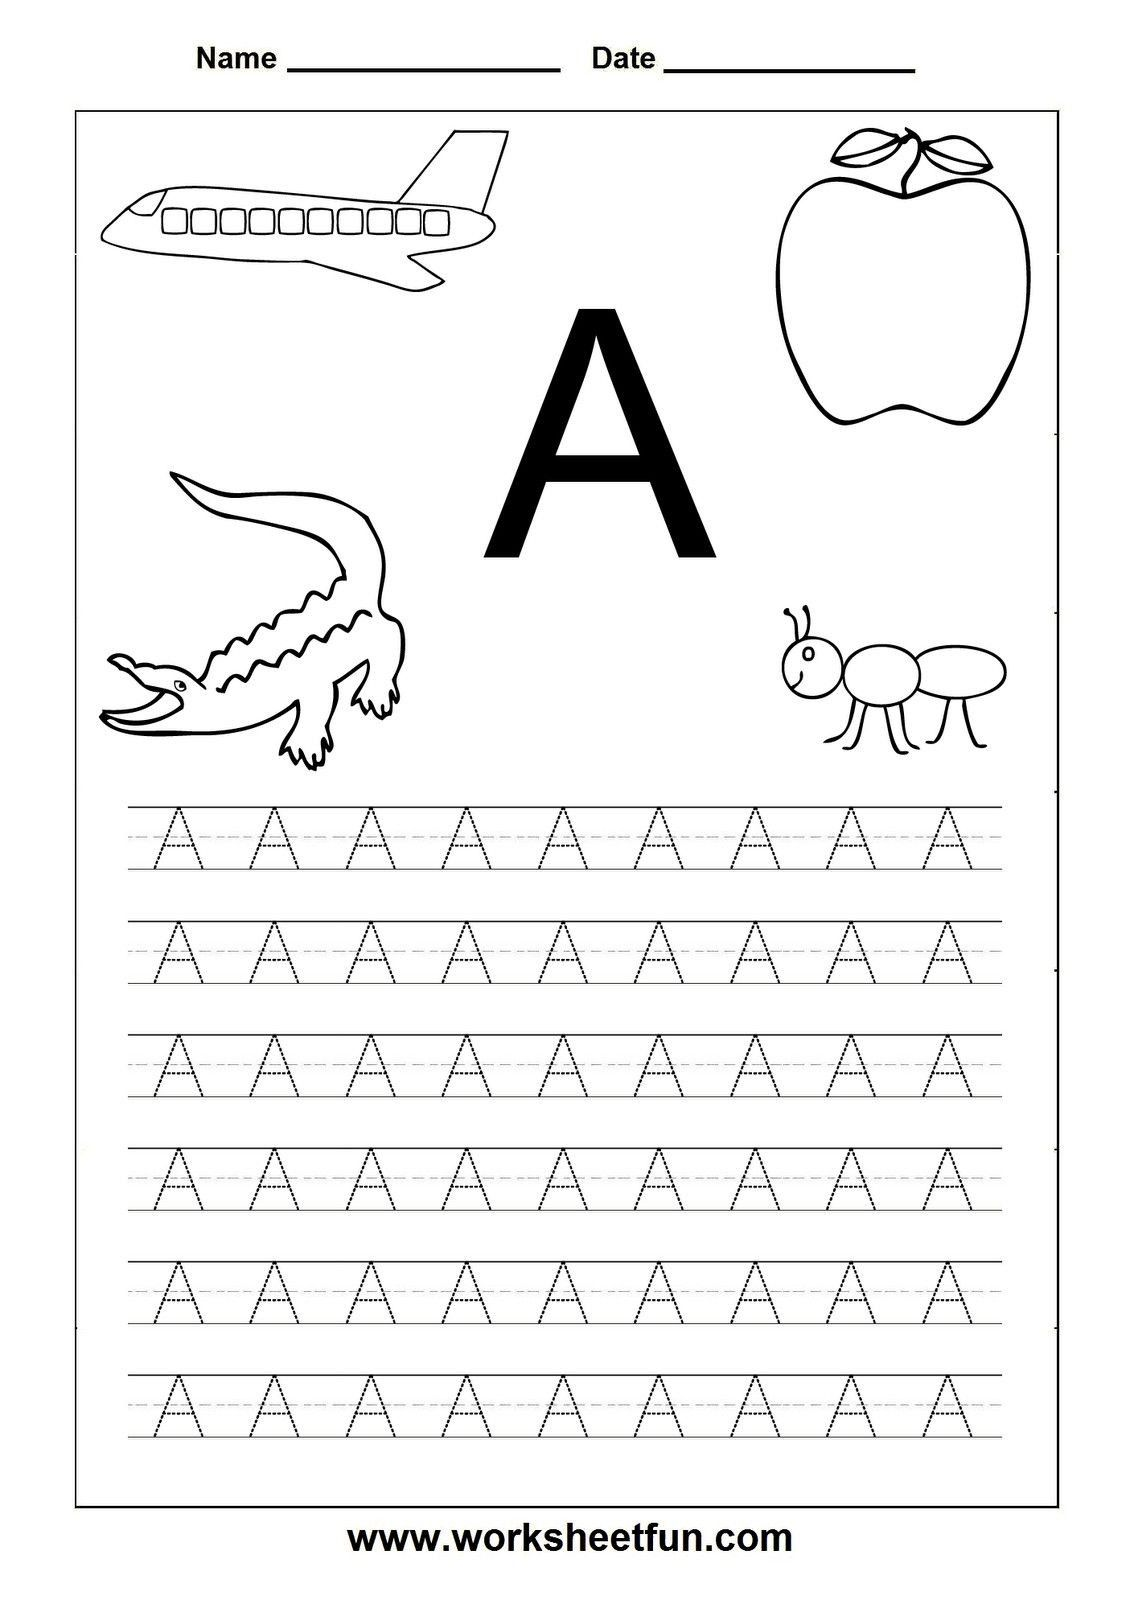 3 Printable Alphabetical Order Worksheets For Kindergarten